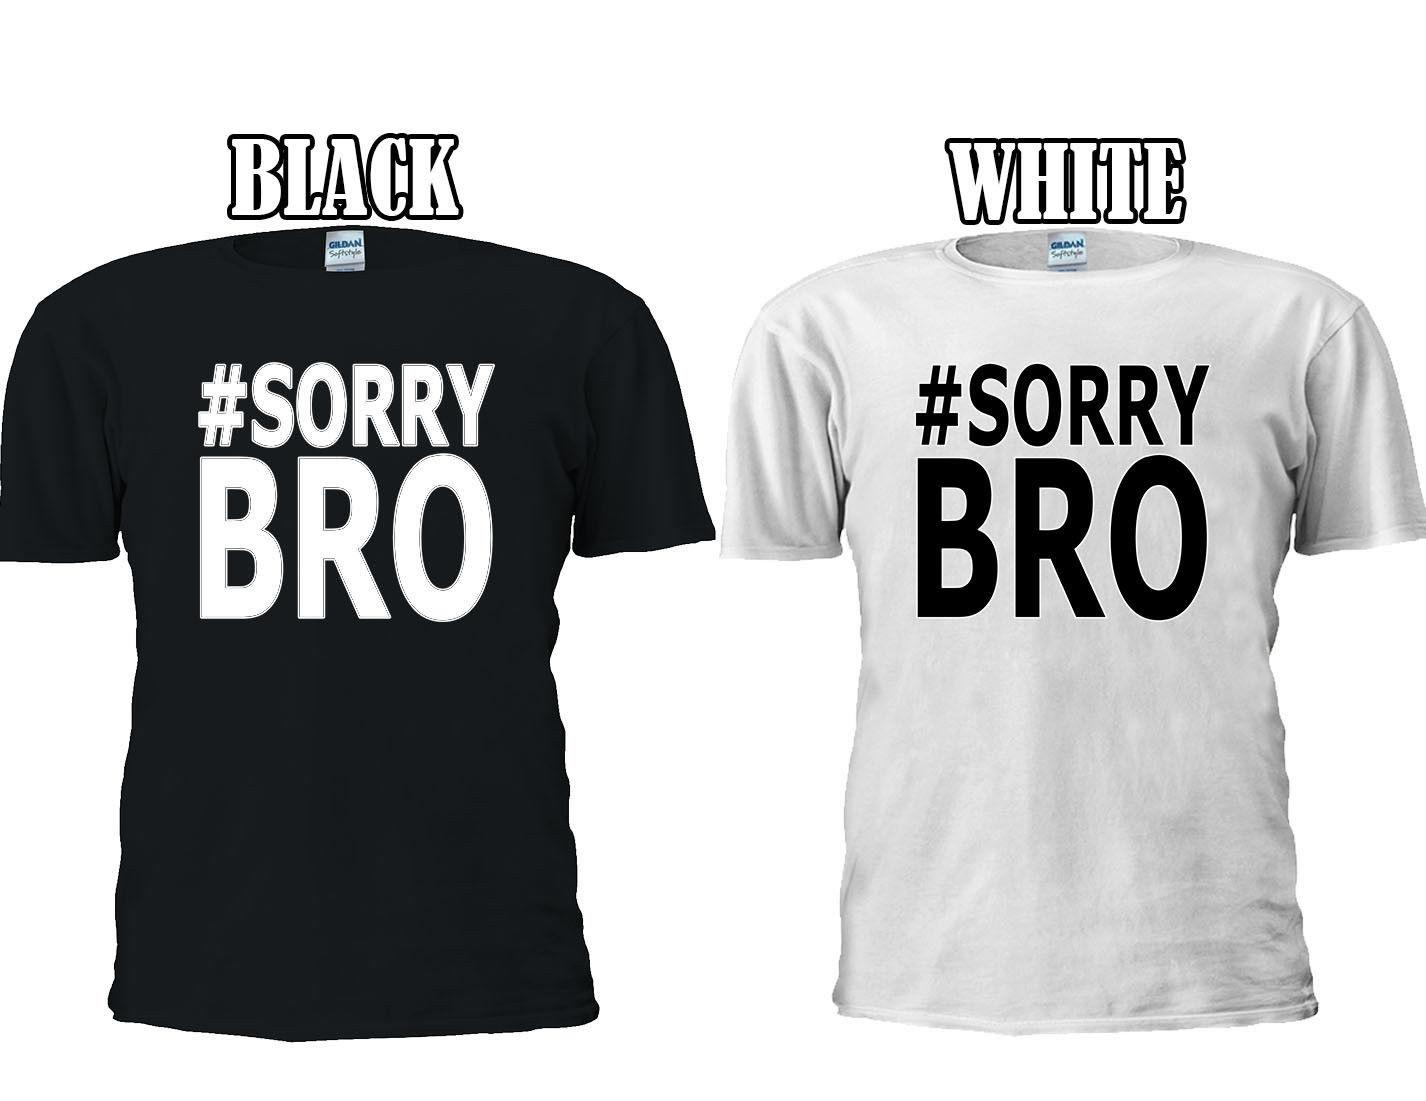 e7ce0b2b Sorry Bro Funny Slogan T Shirt Baseball Vest Men Women Unisex 2700 Funny  Unisex Casual Tee Gift T Shirts For Sale Printed T Shirt From Fat_dad, ...